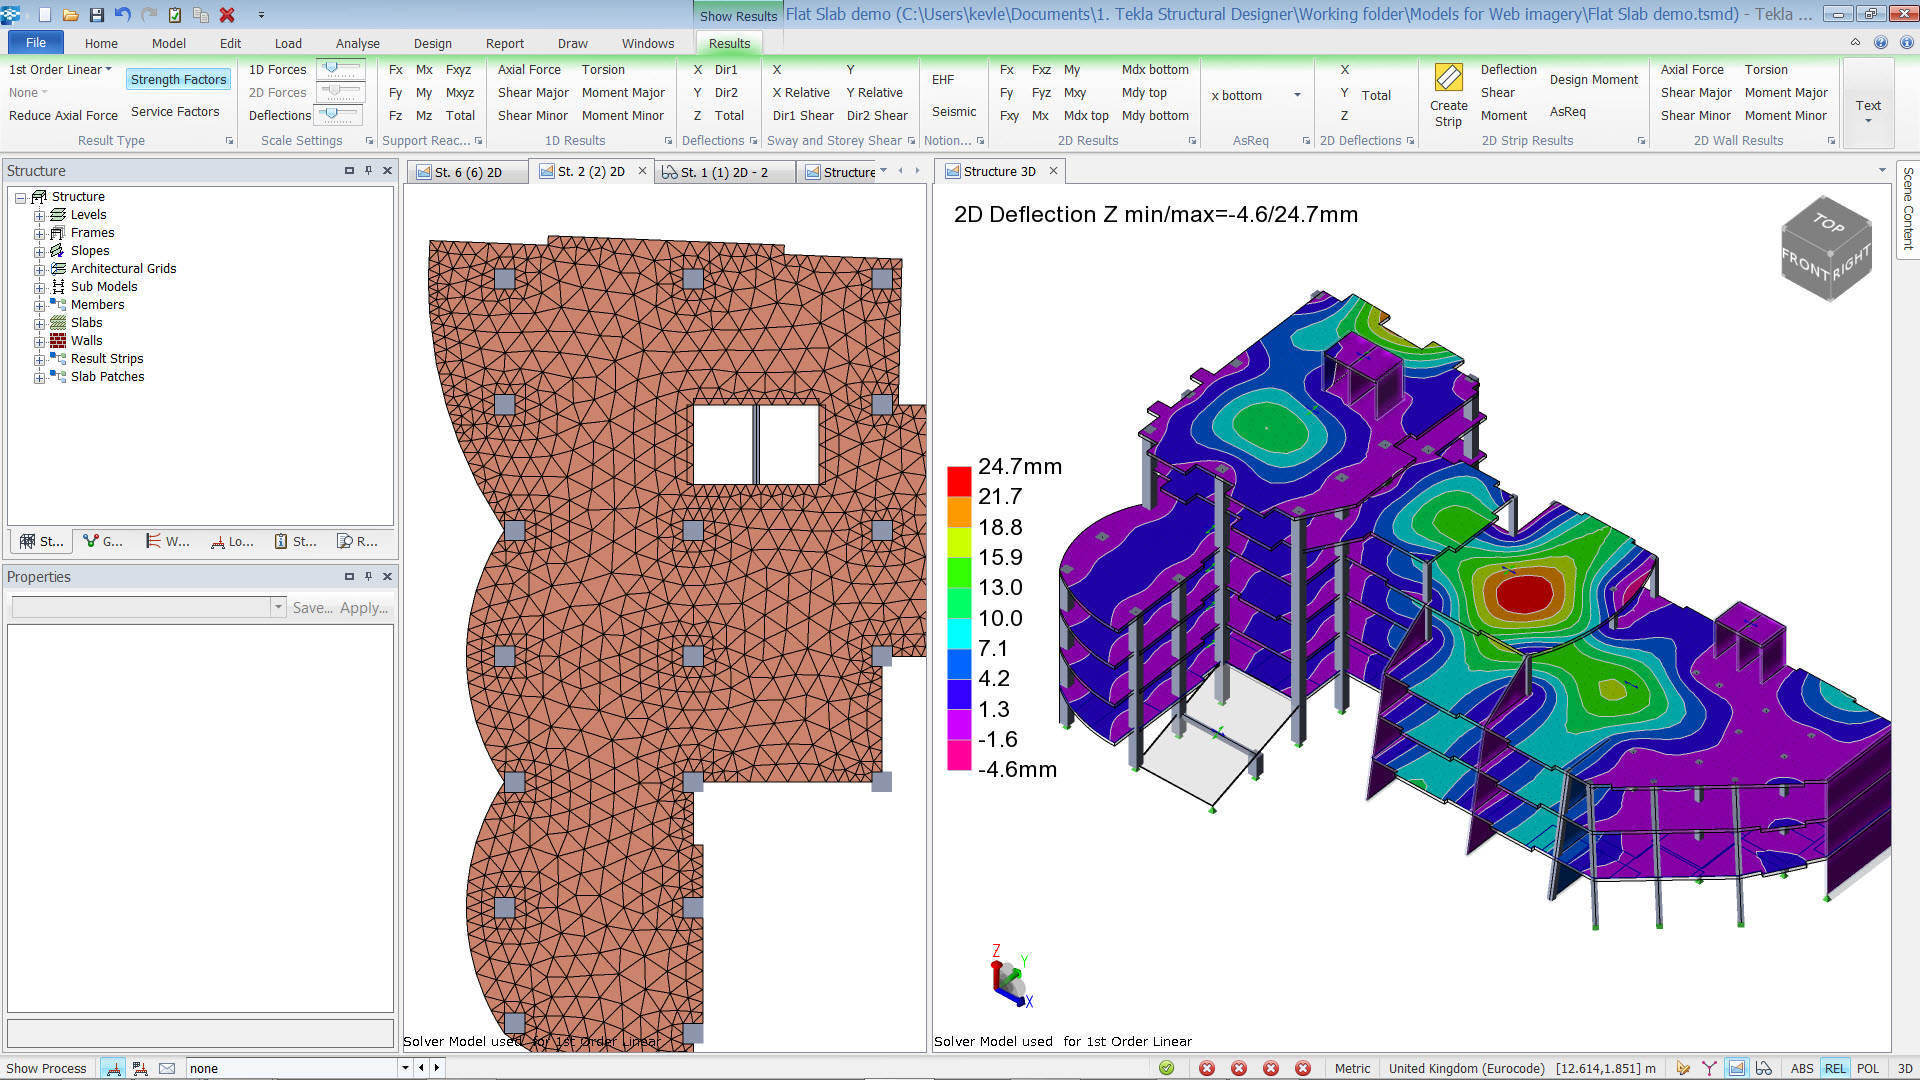 Tekla Structural Designer 2015 15 0 Download (Free trial) - TSD exe